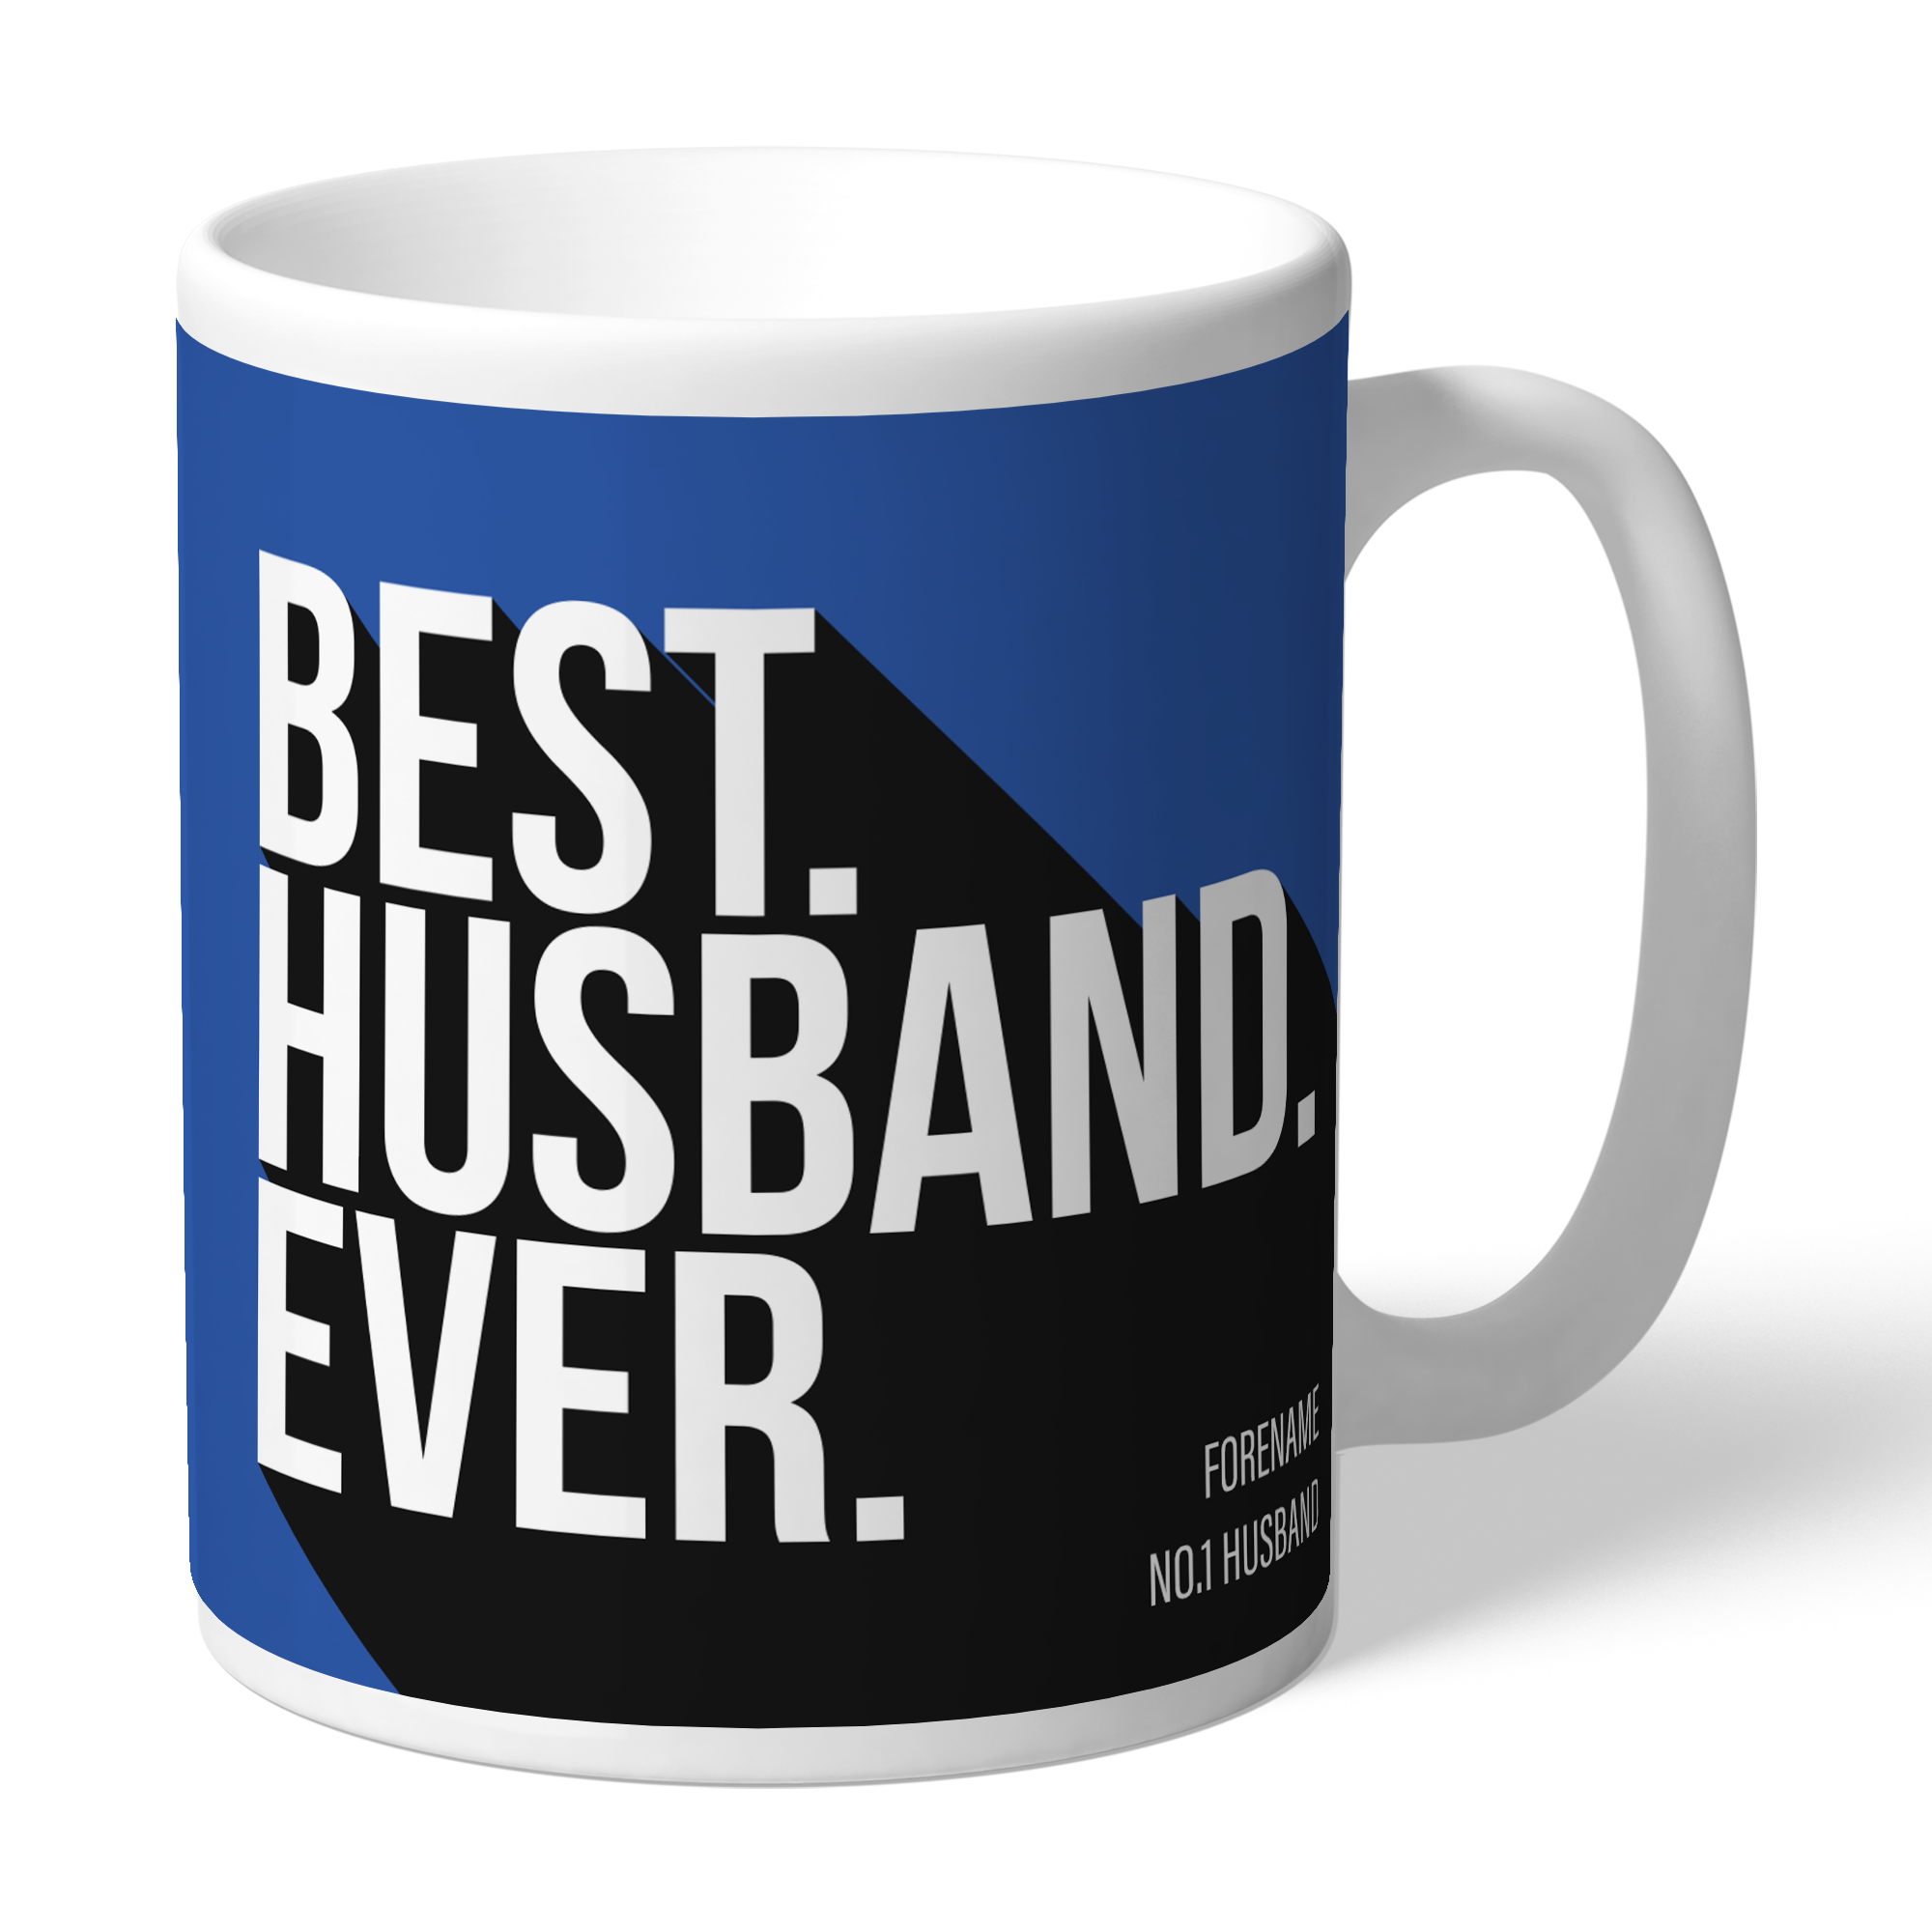 Sheffield Wednesday Best Husband Ever Mug